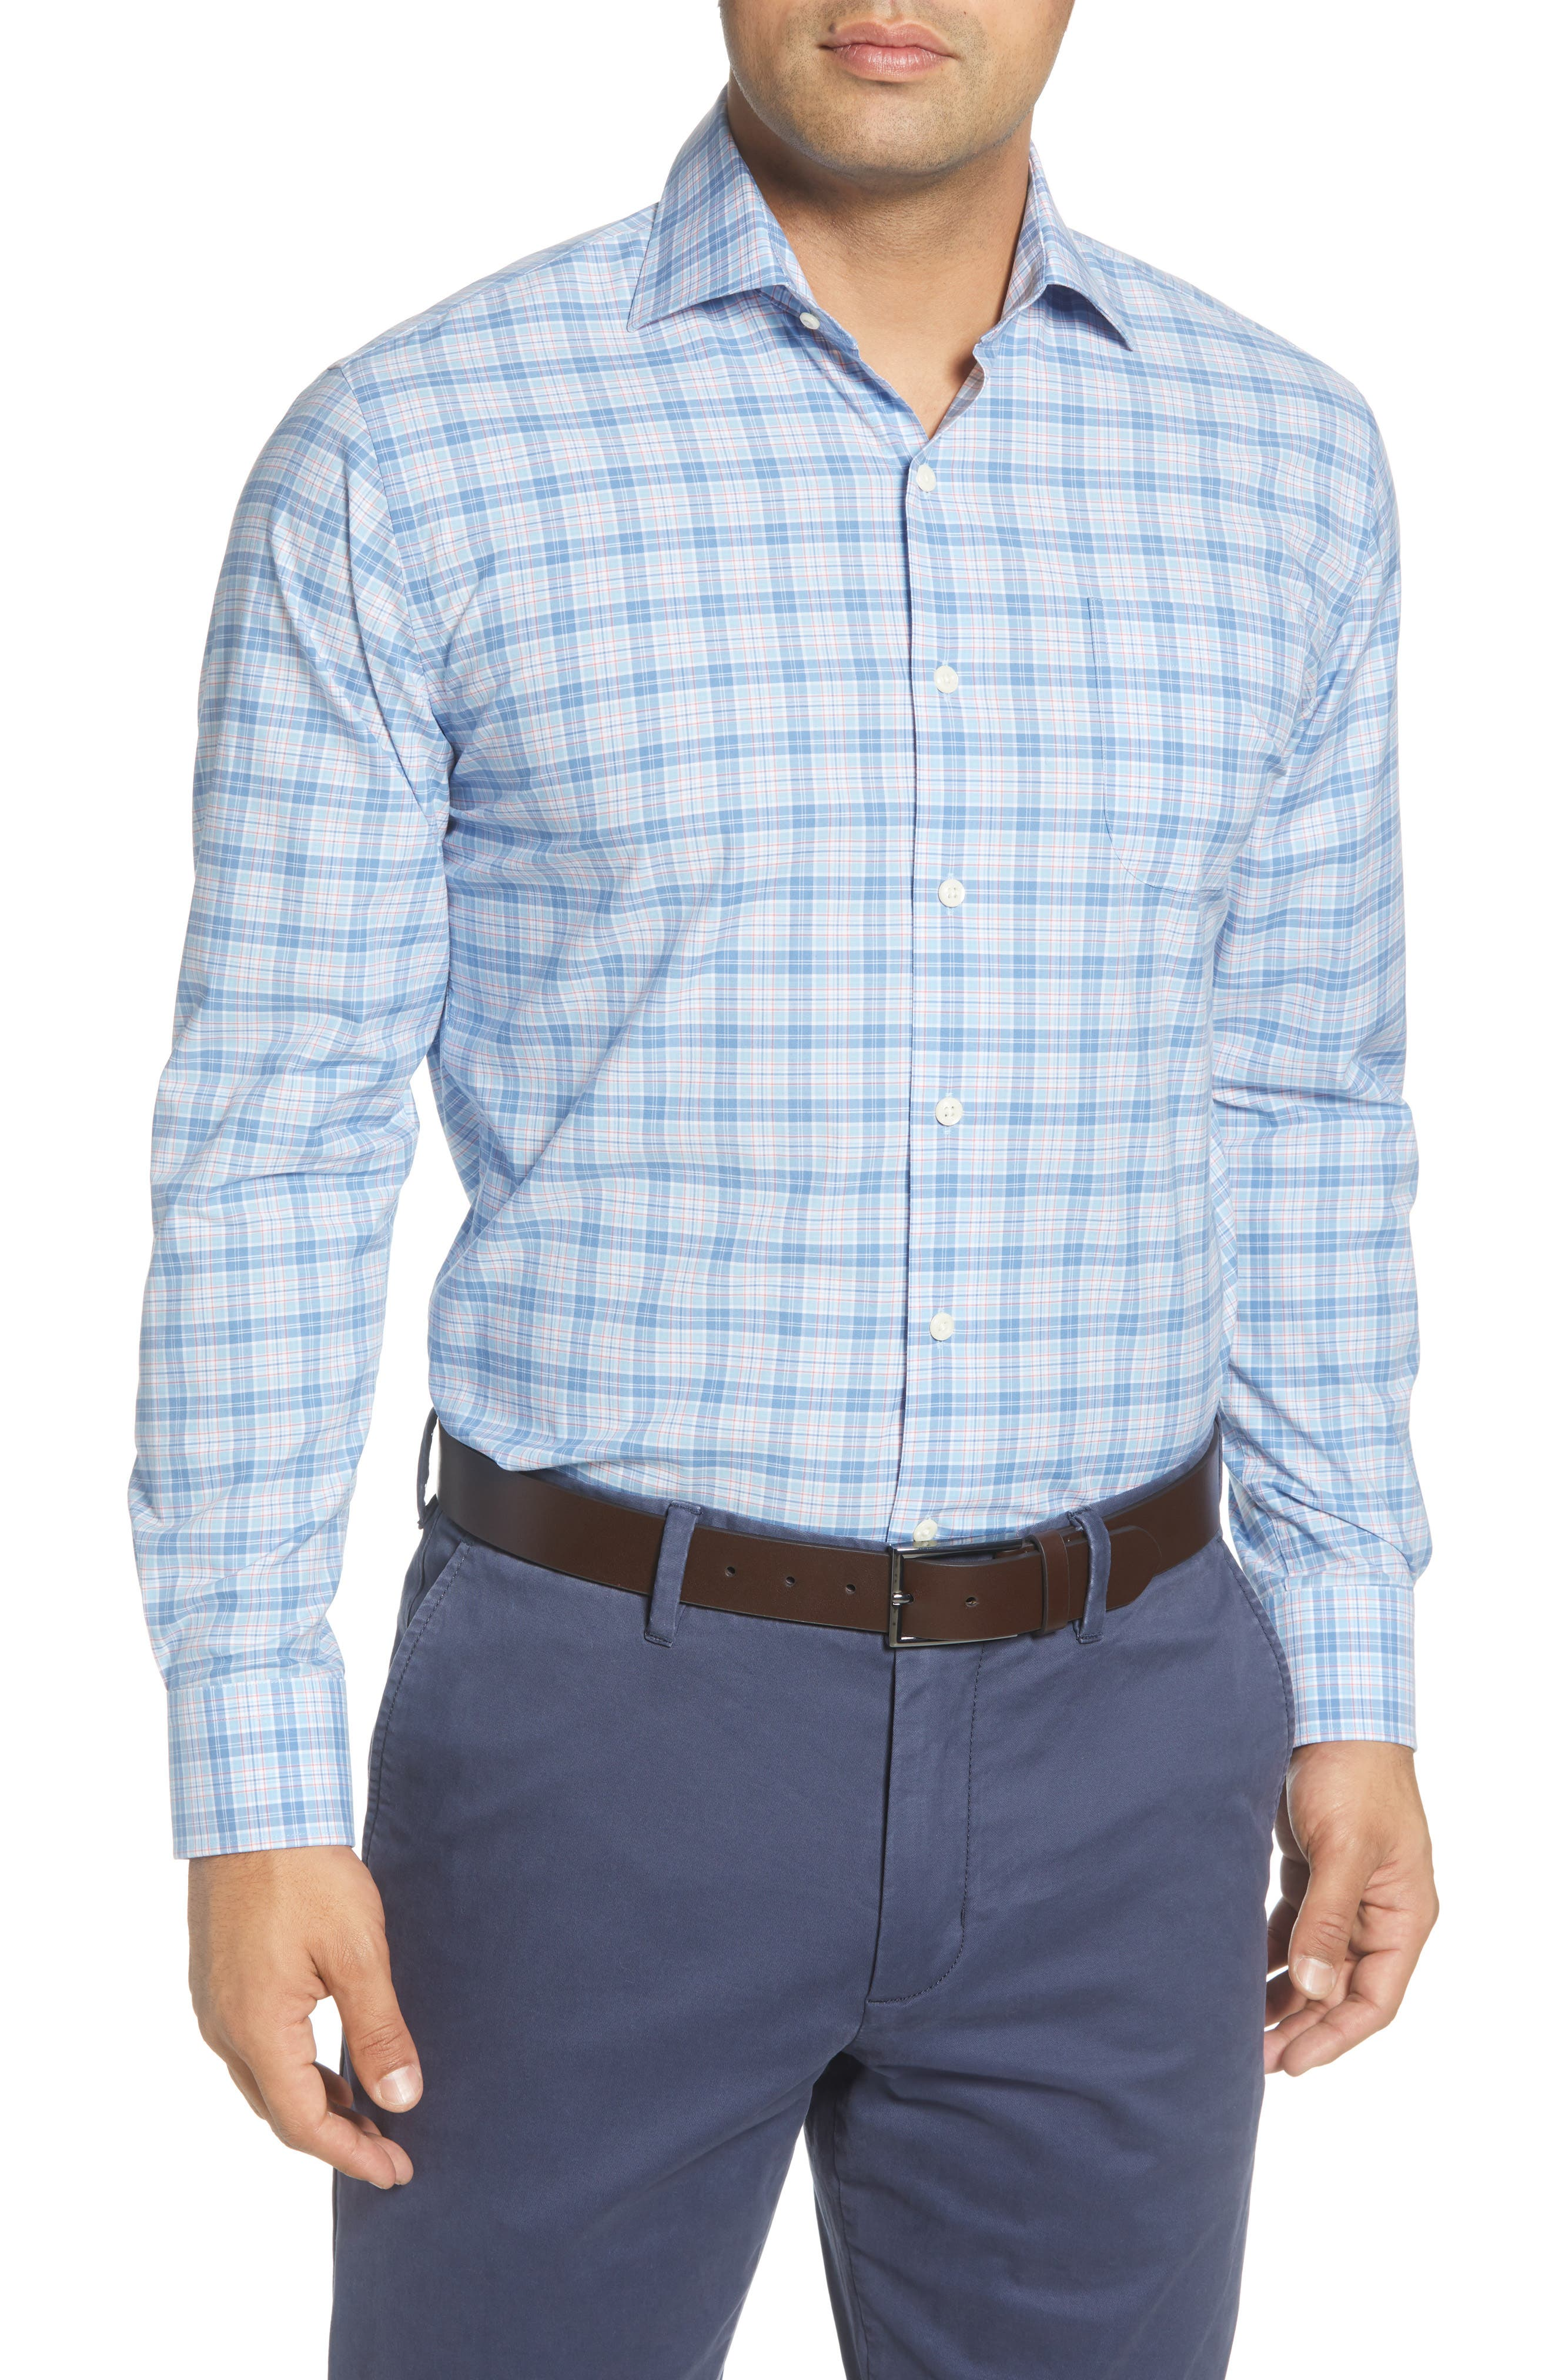 An easy fit, easy-car sport shirt in plaid-patterned, lightweight stretch cotton sets your look for a day at the office all the way into a night out. Style Name: Peter Millar Barrett Regular Fit Plaid Button-Up Shirt. Style Number: 5953485. Available in stores.